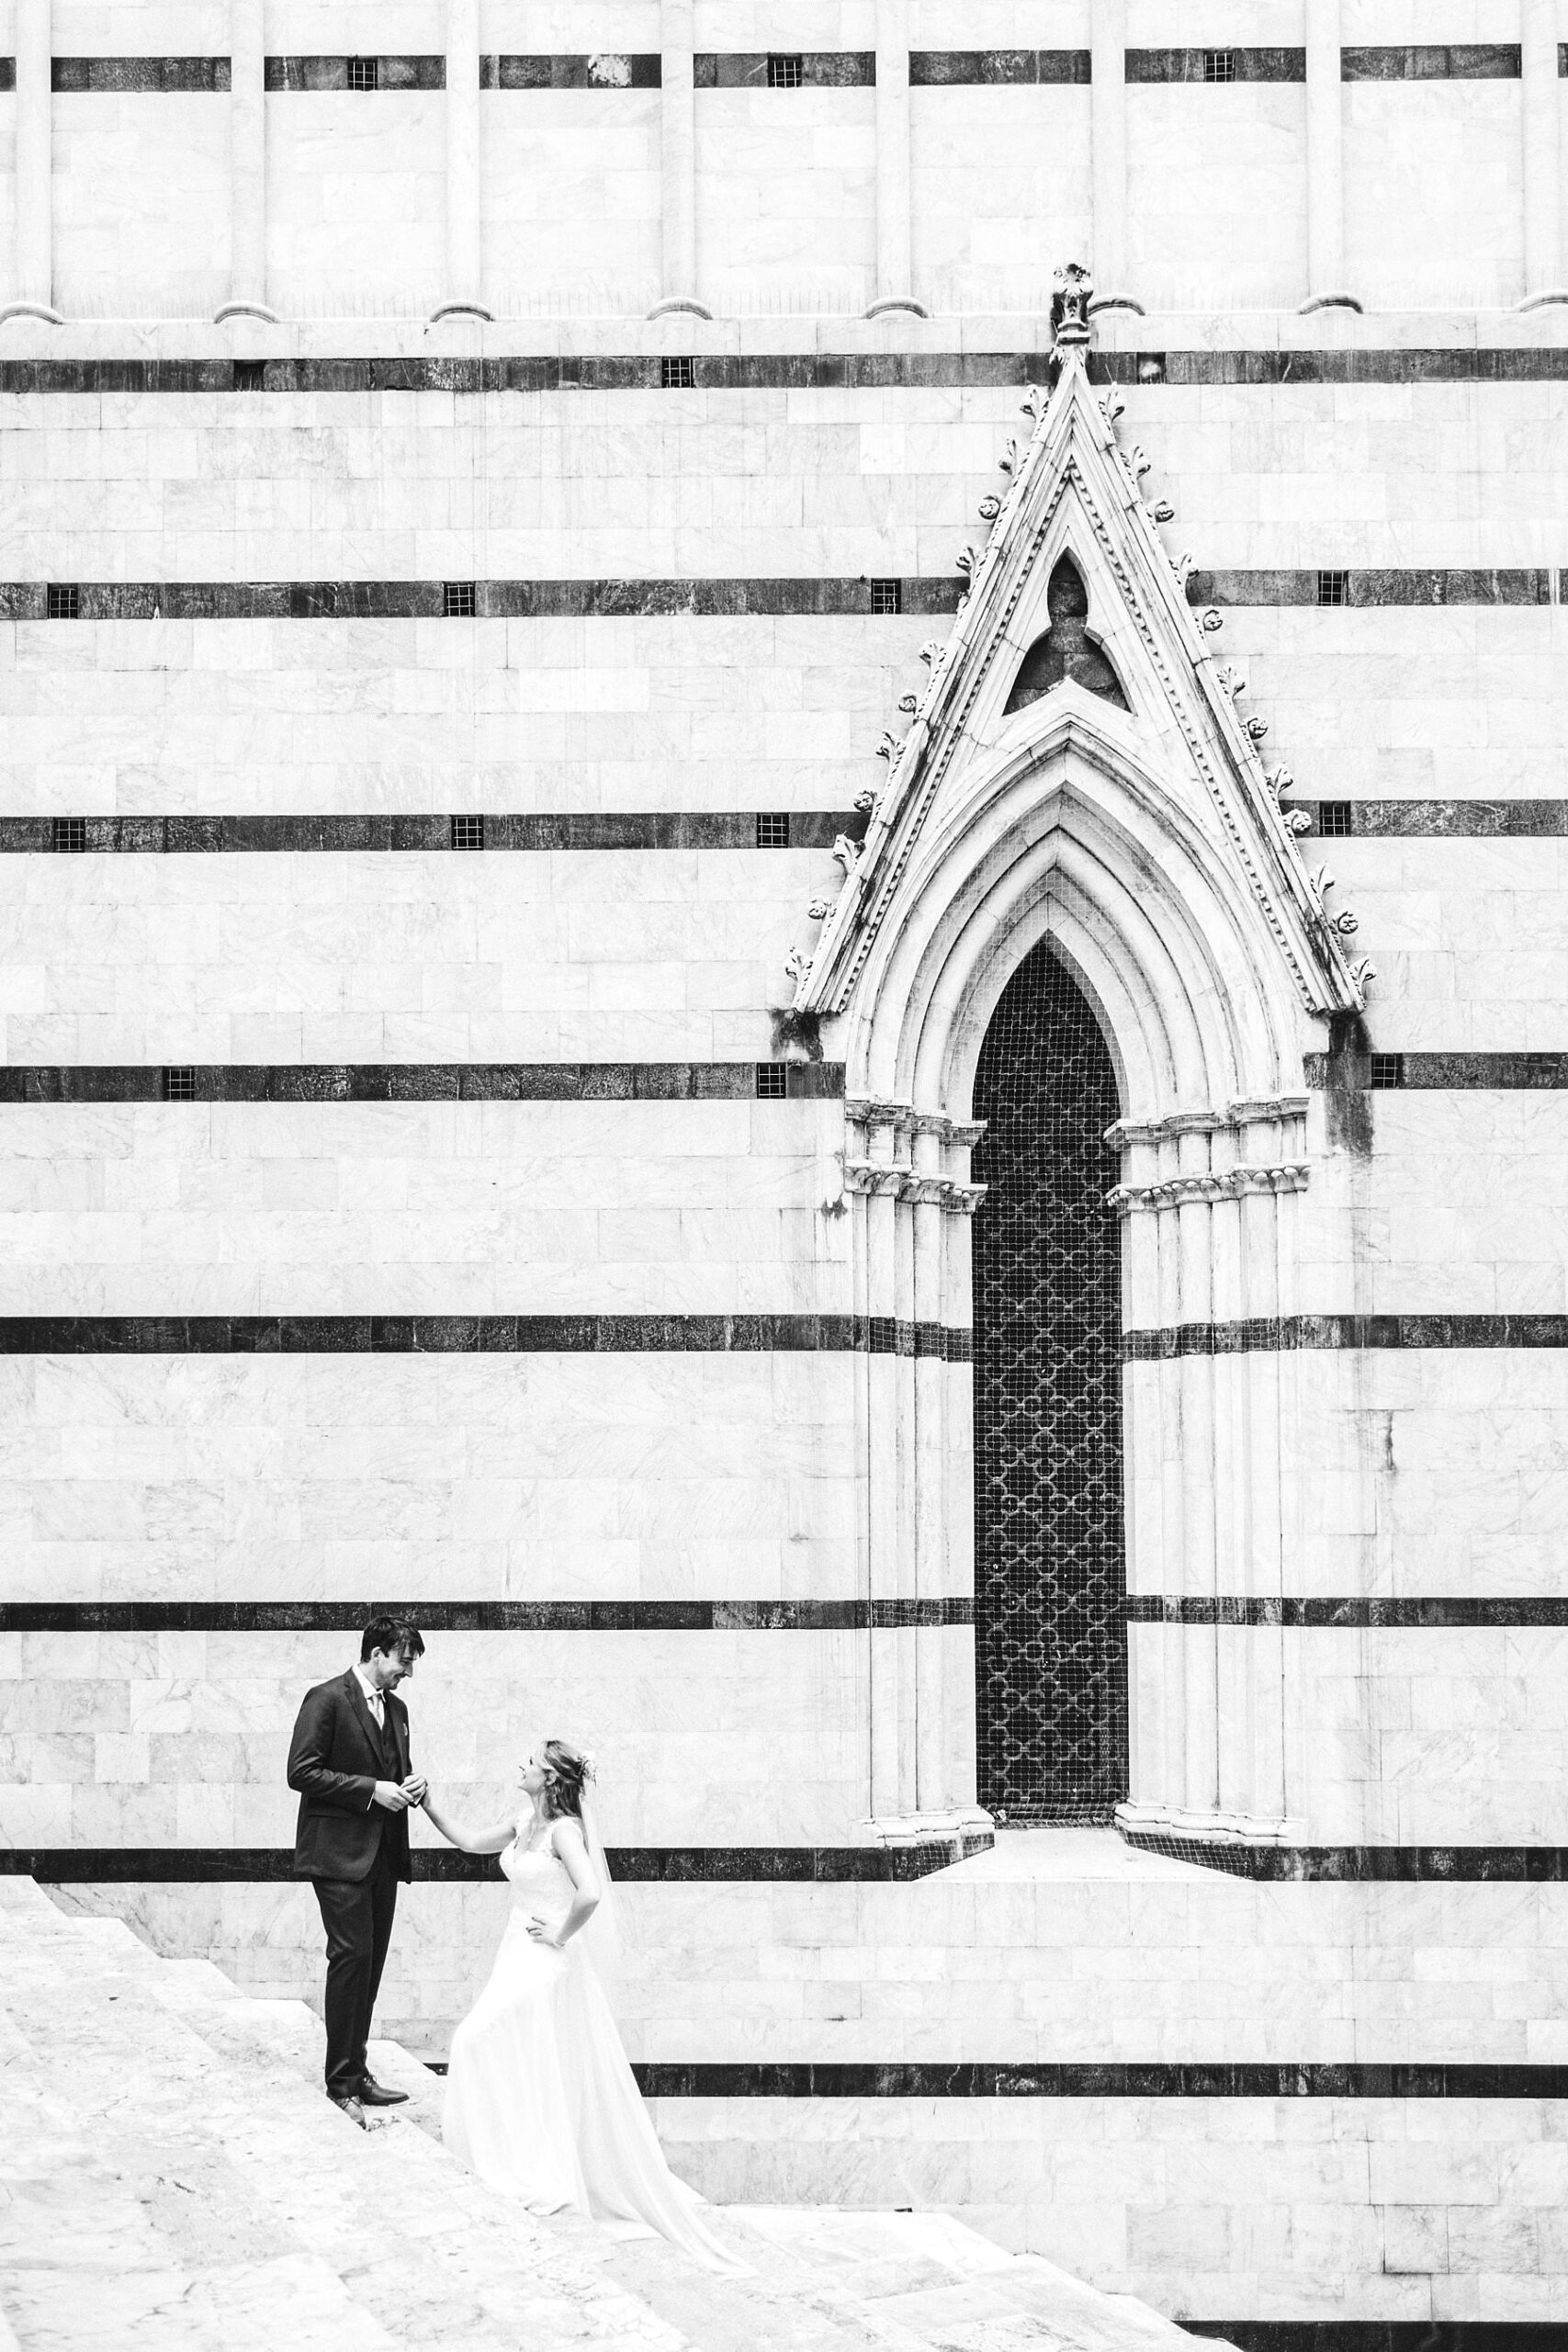 Getting married in Italy, surrounded by beauty. Bride Poppy and groom Chris elopement photo near the Duomo of Siena, Tuscany